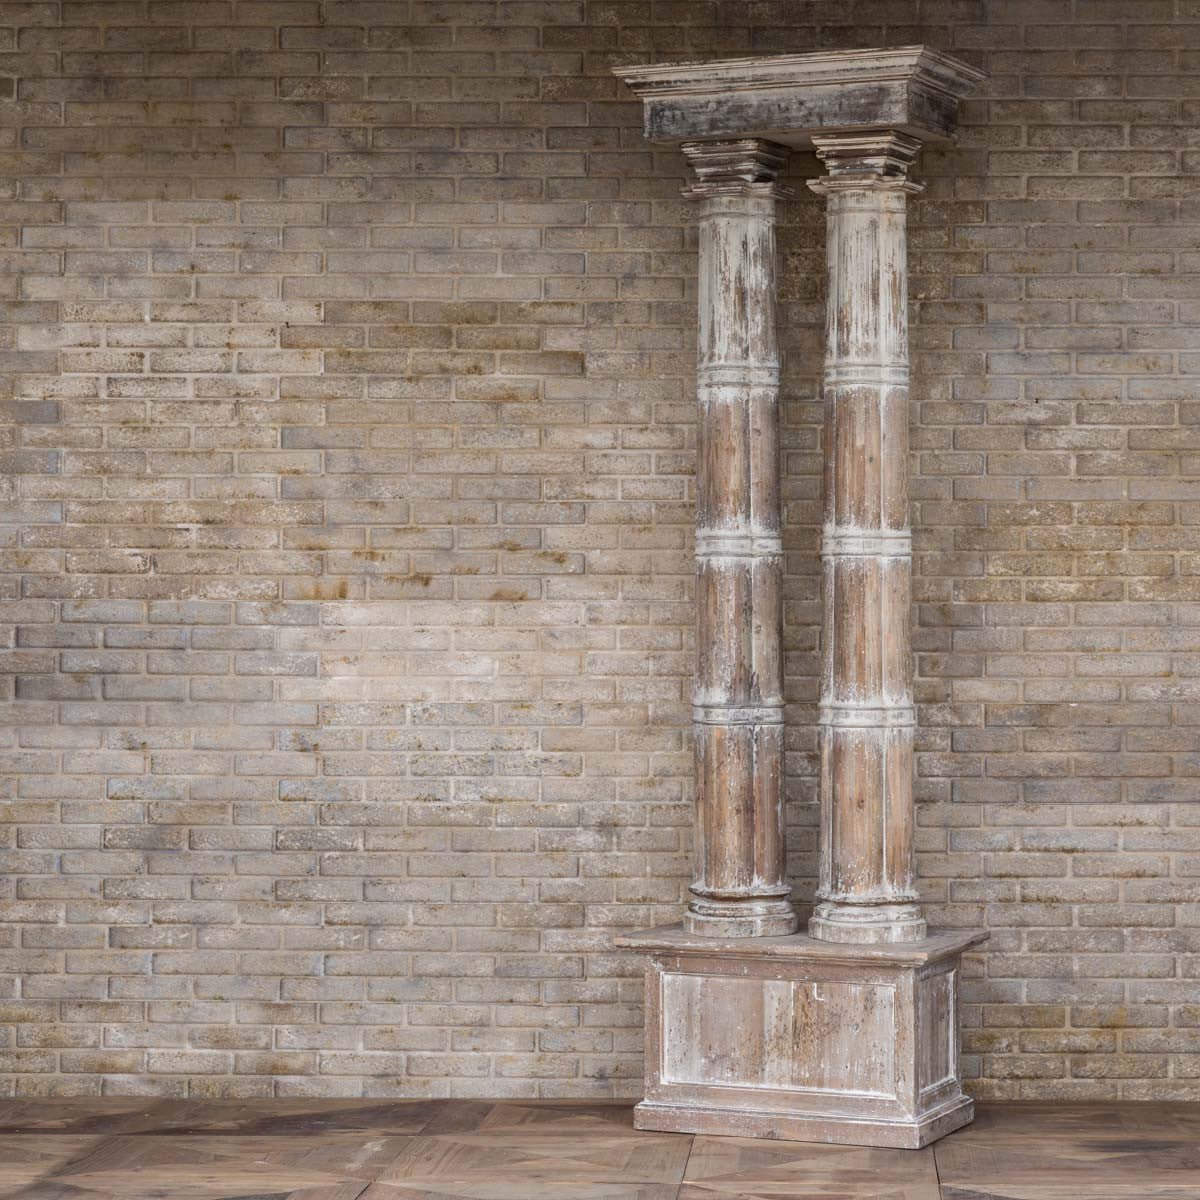 park hill collection roman columns for sale, Double Pillar relics for sale